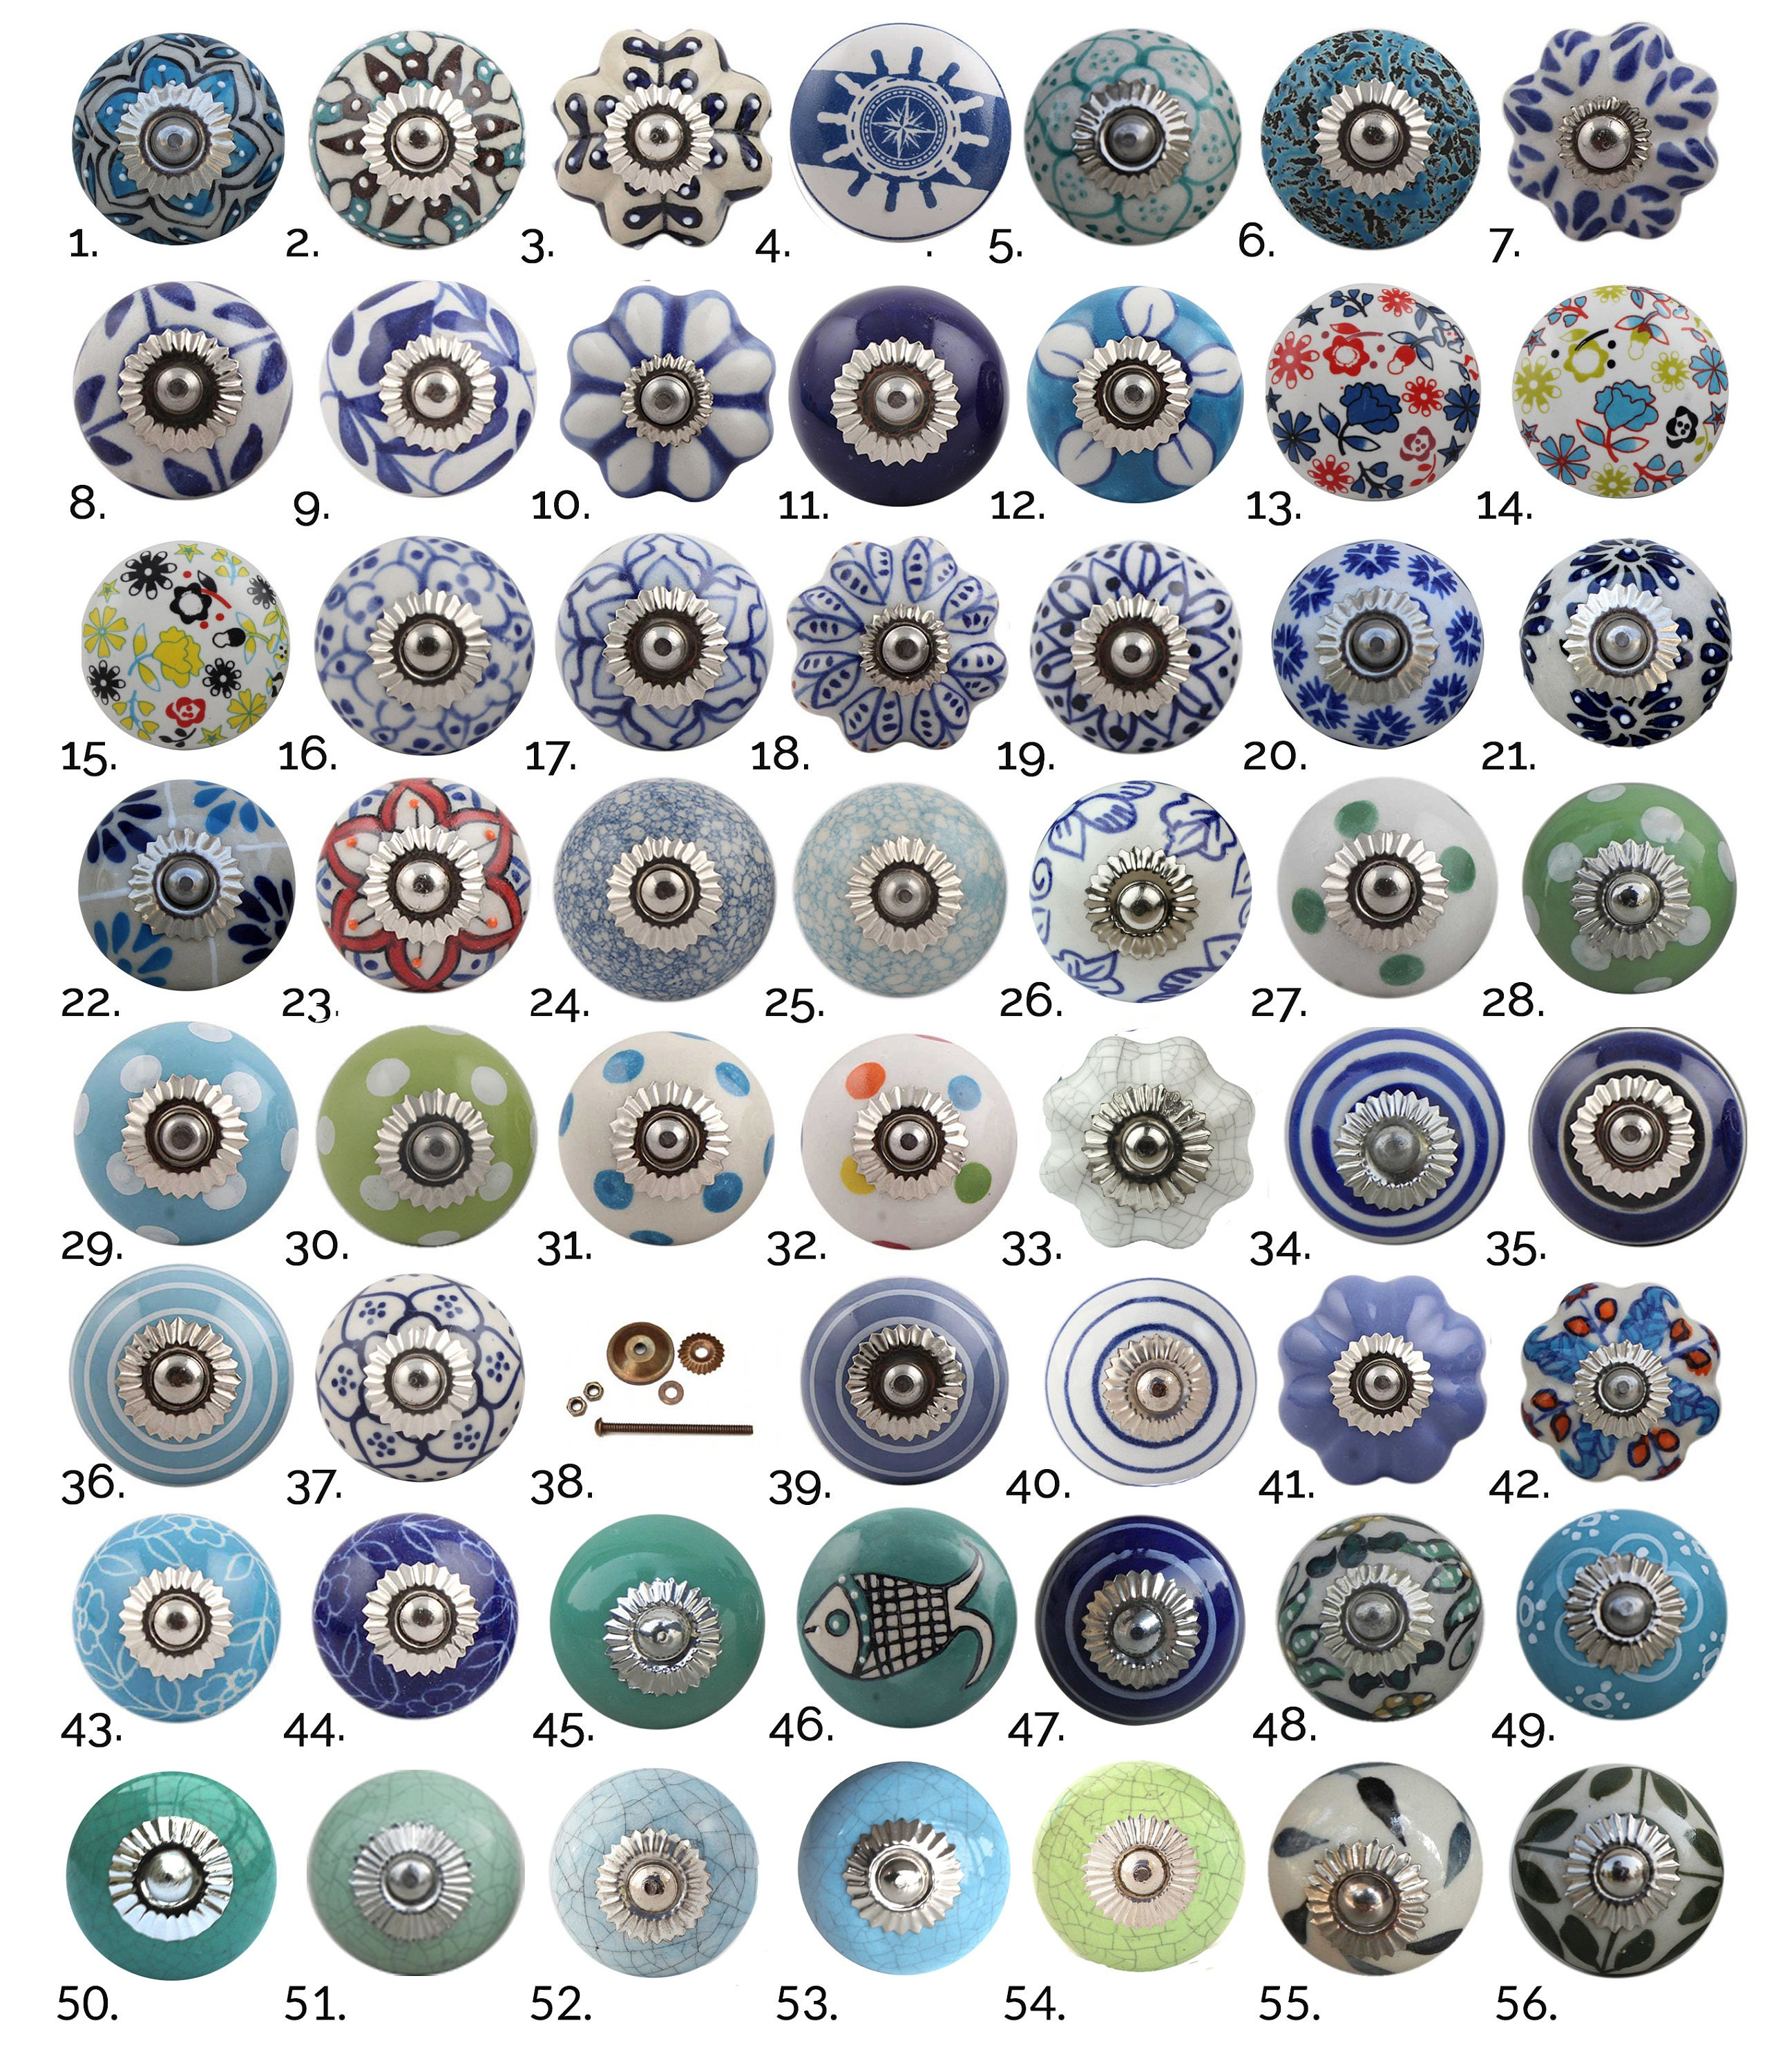 Blue Green Ceramic Cabinet Knobs  Furniture Door Knobs in Various Designs  China Drawer Pulls Kitchen Cupboard Handles